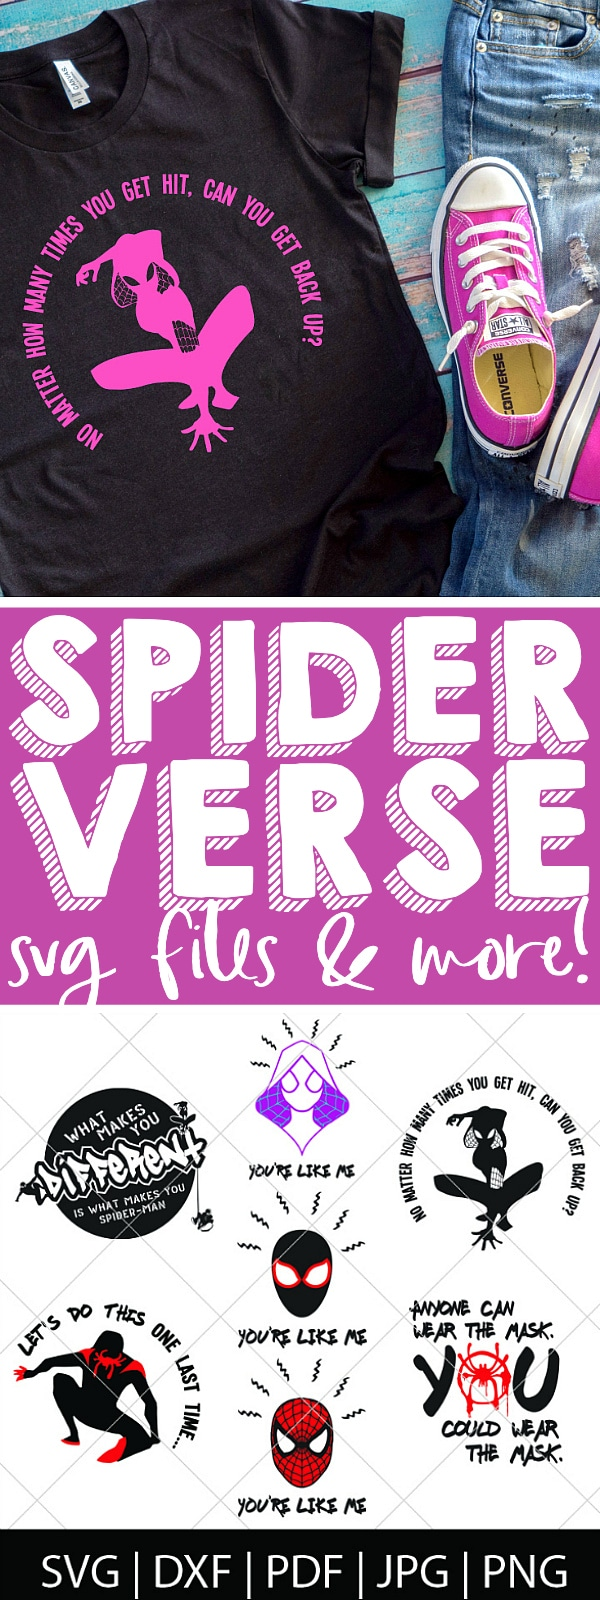 Make your own Spider-Gwen shirts or gifts with this Spider-Man: Into the Spider-verse SVG Bundle - We love our friendly neighborhood Spider-Man but we really love our Spider-Gwen, so we're celebrating Into the Spider-Verse with new cut files! Perfect for making Spider-Man shirts, mugs, gifts and more! | THE LOVE NERDS #spiderverse #spiderman #avengerssvg #marvelsvg